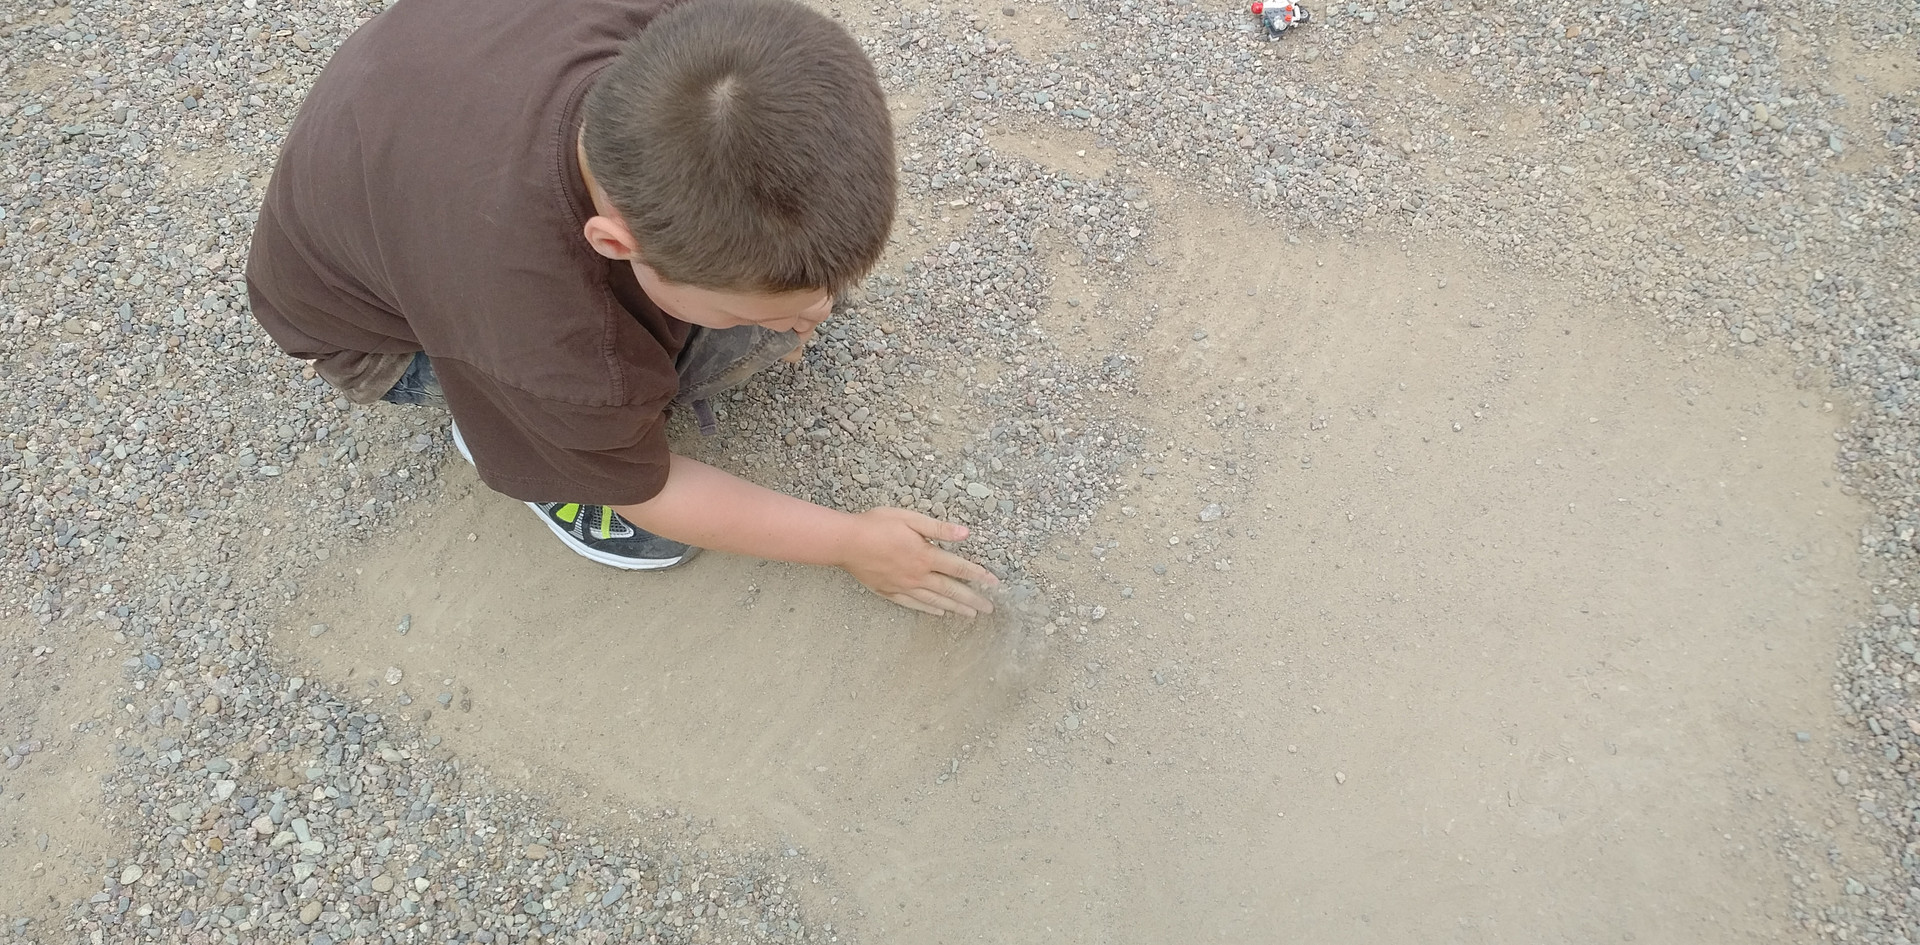 Building roads for the LEGO vehicles